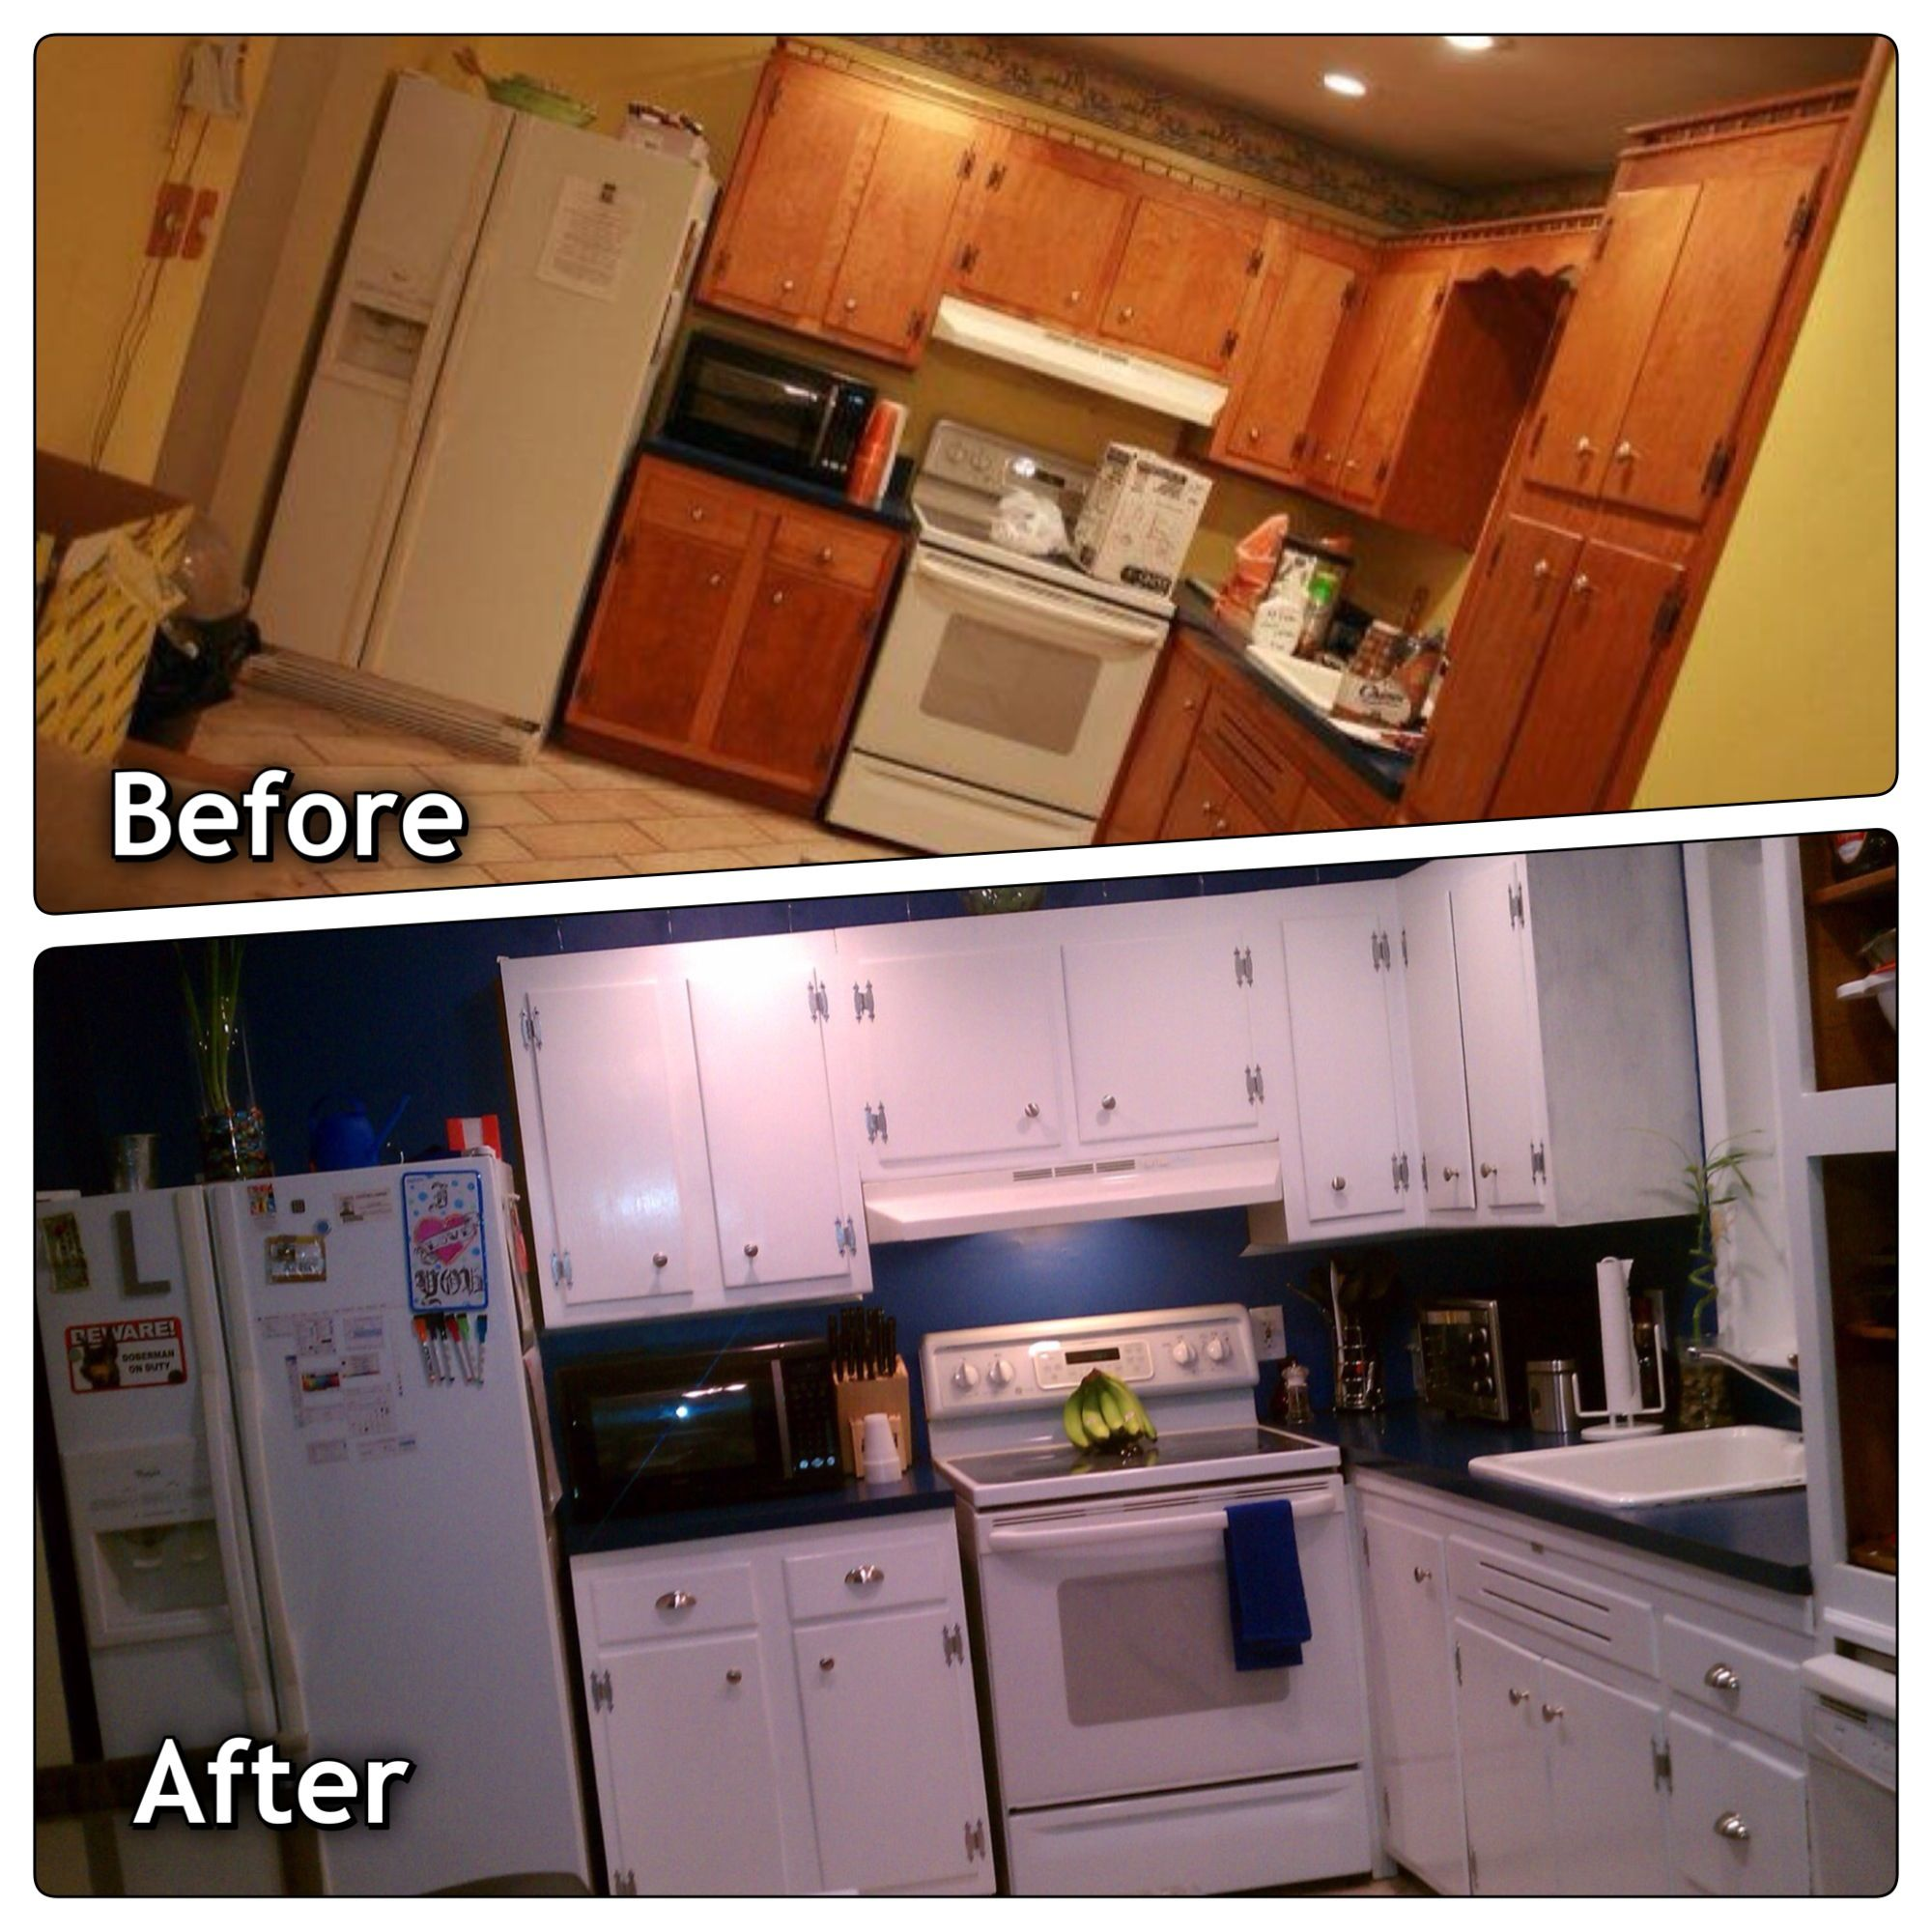 My Kitchen Was A 1970 S Nightmare We Painted The Cabinets With A White Durable Paint Made By Behr My Husband Spra Painting Oak Cabinets Durable Paint Kitchen